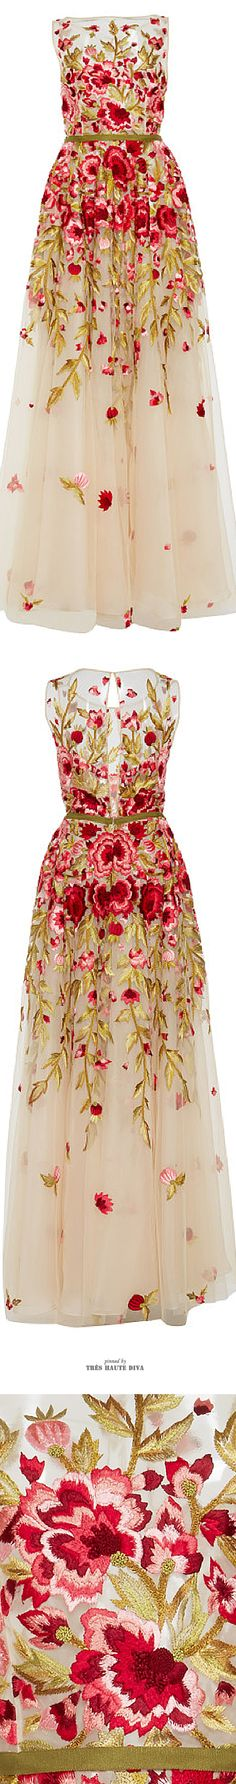 Naeem Khan Floral Embroidered Sleeveless GownSS 2015